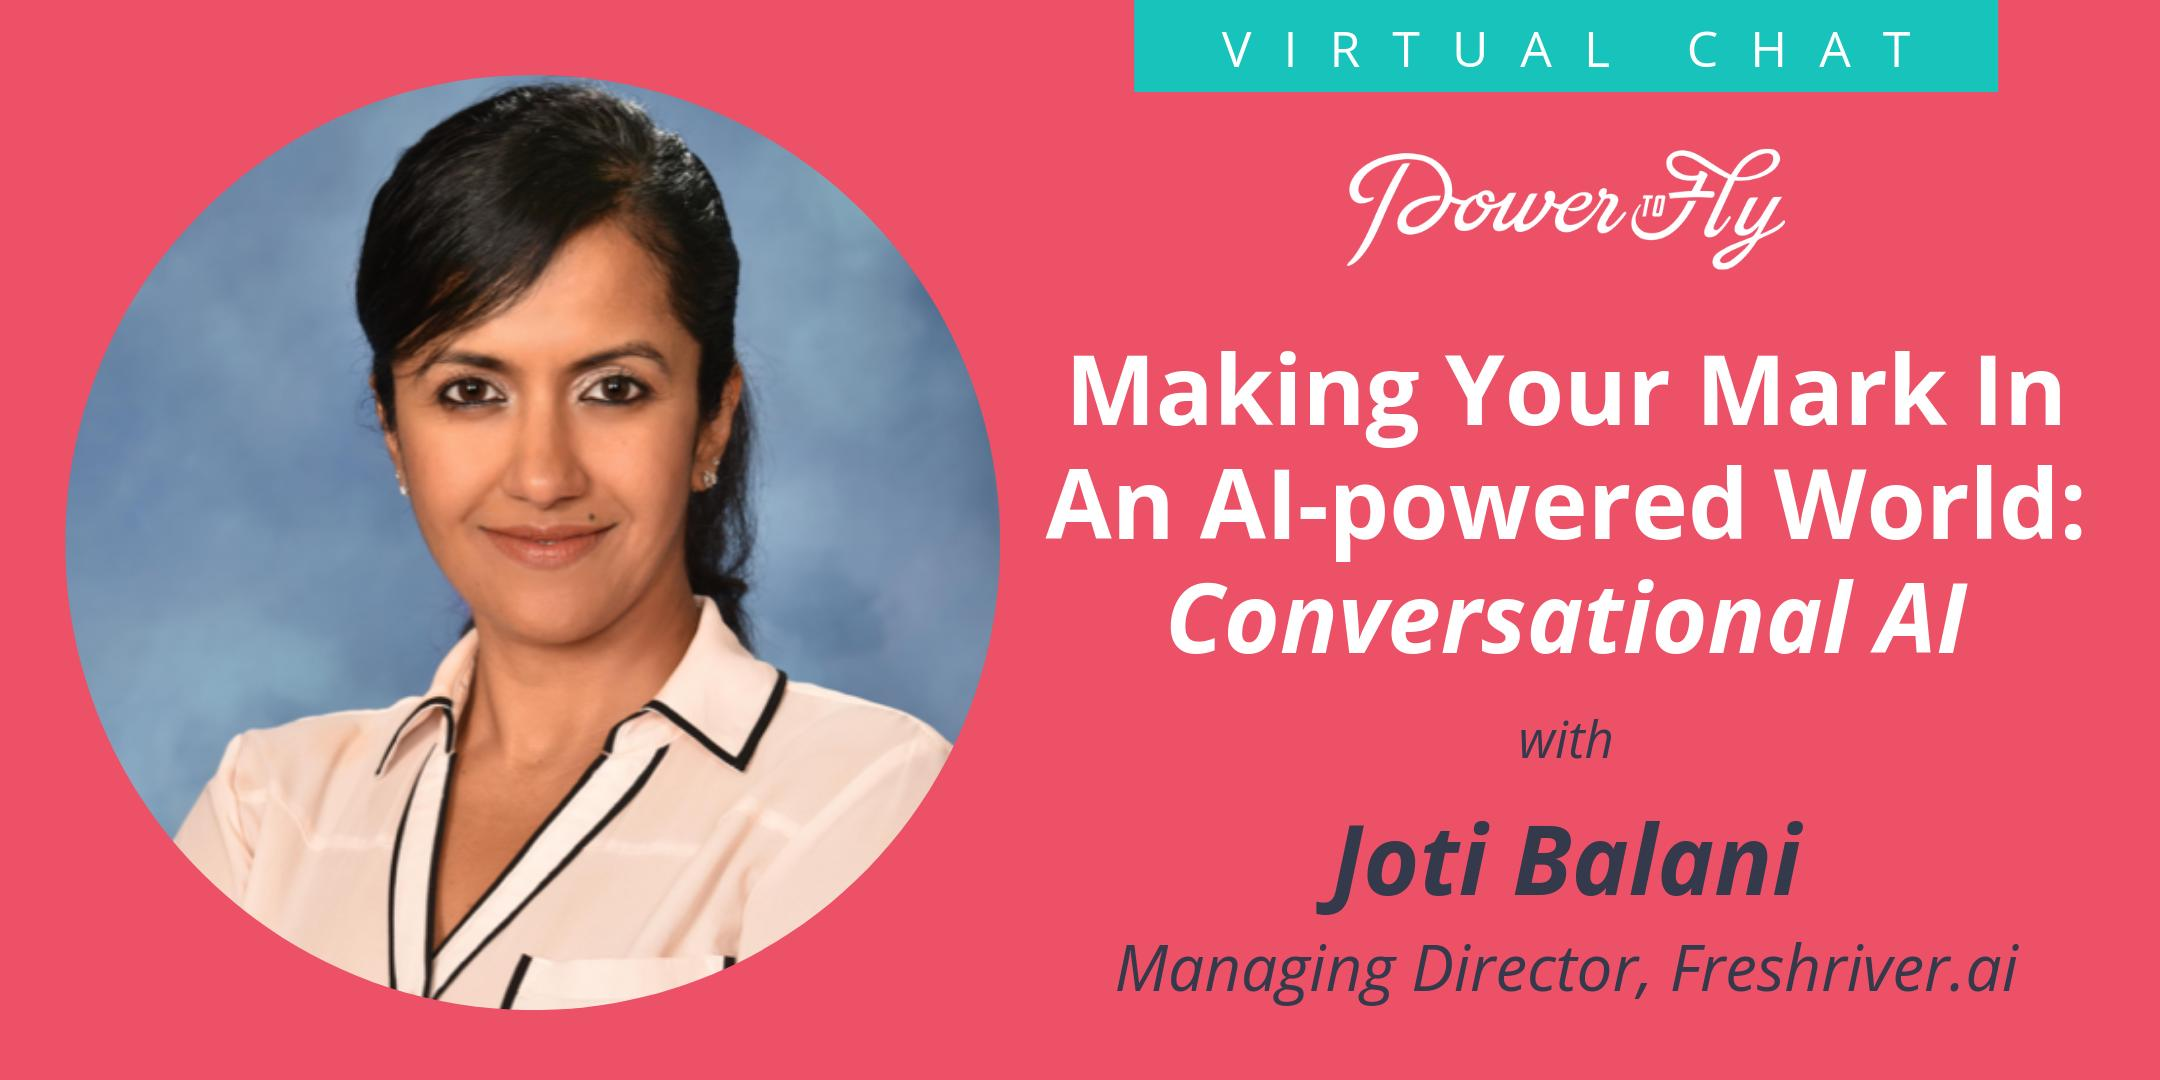 Making Your Mark In An AI-powered World: Conversational AI